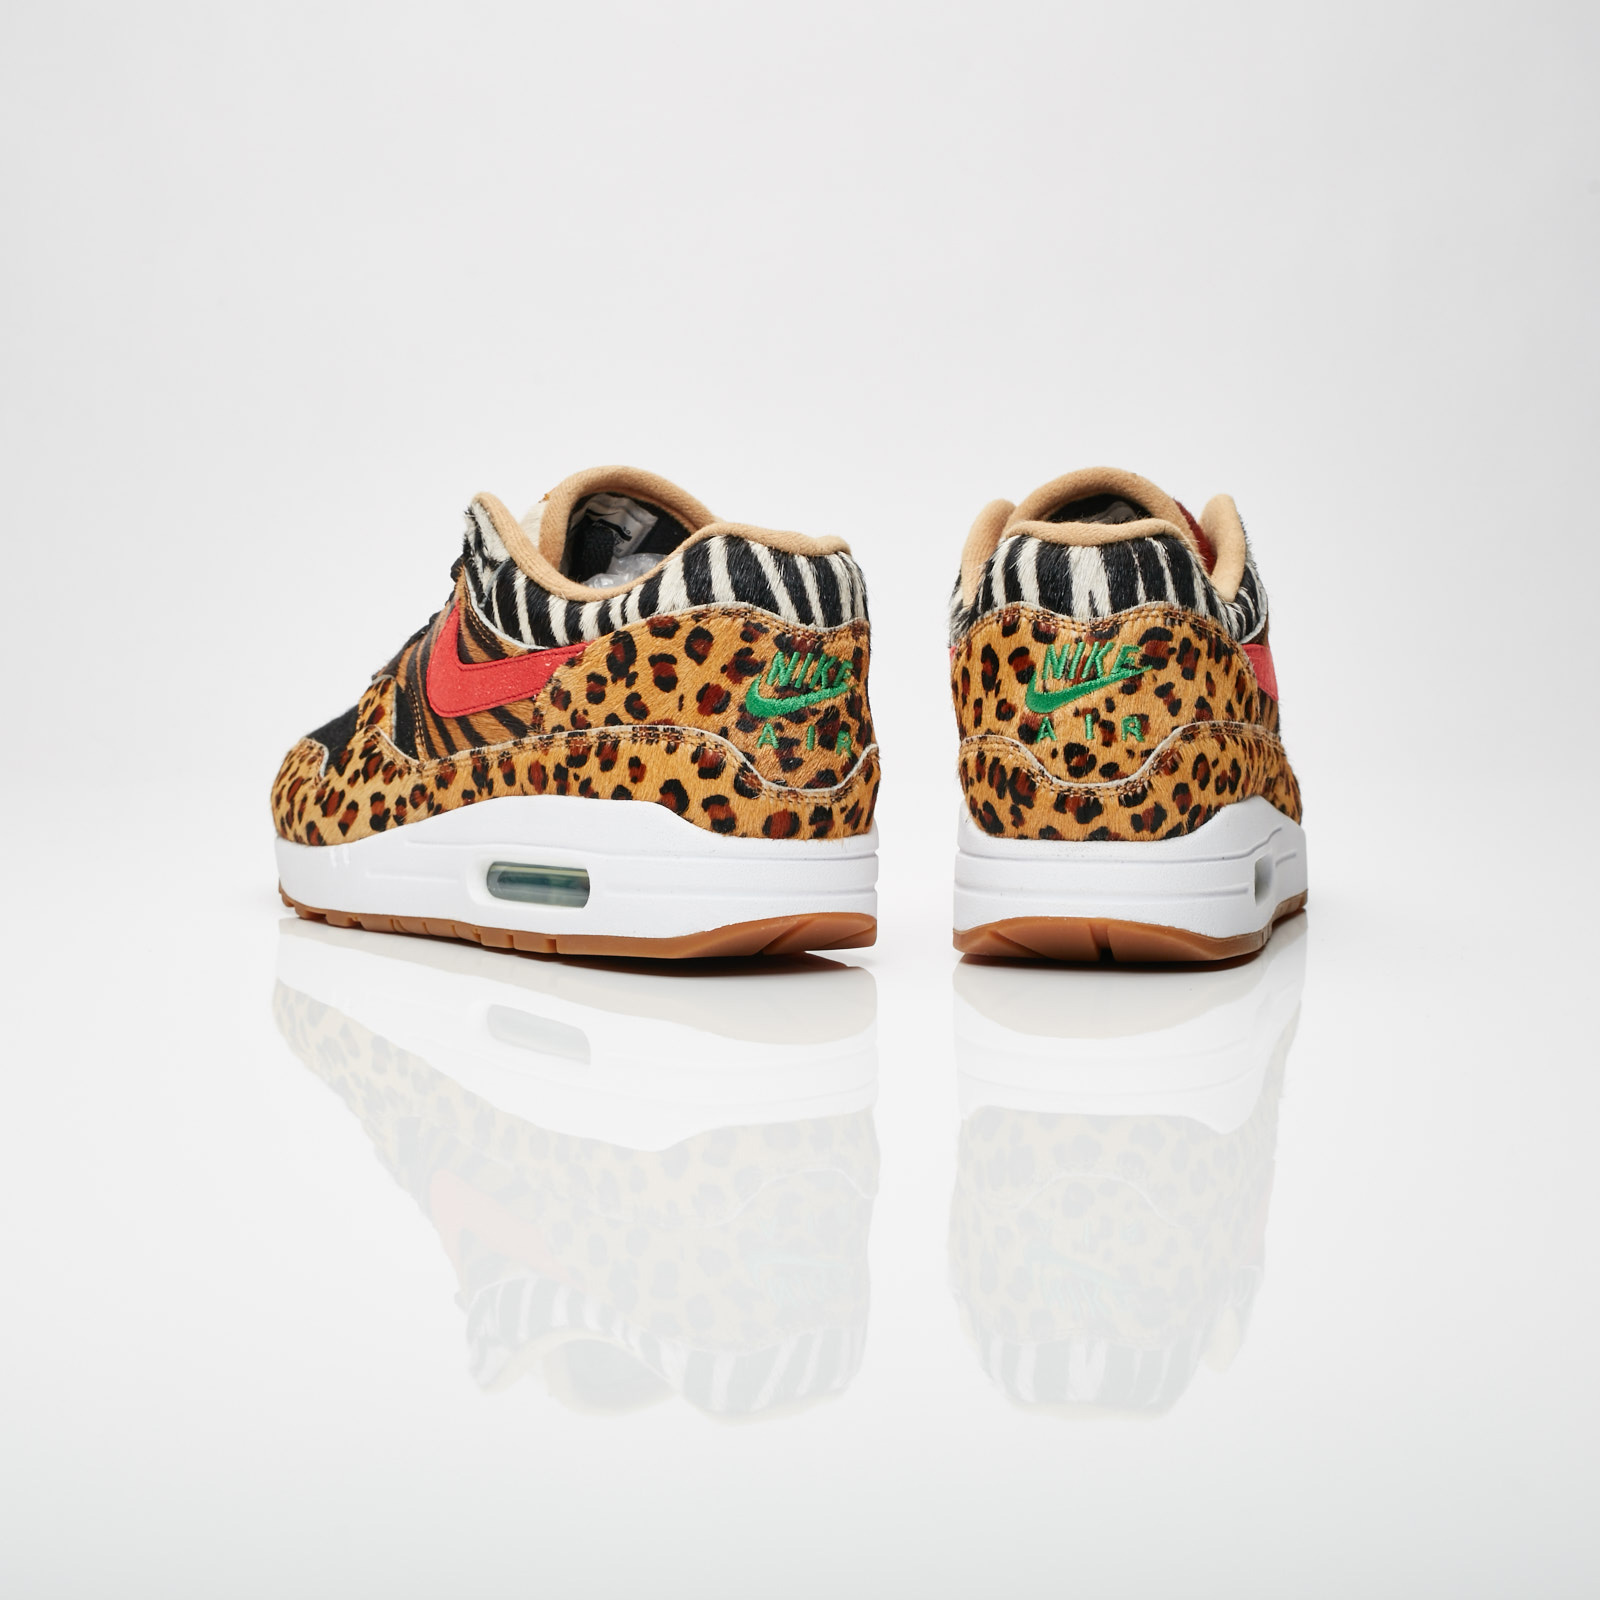 new product 75831 87222 Nike Air Max 1 DLX Animal Pack 2.0 - Aq0928-700 ...